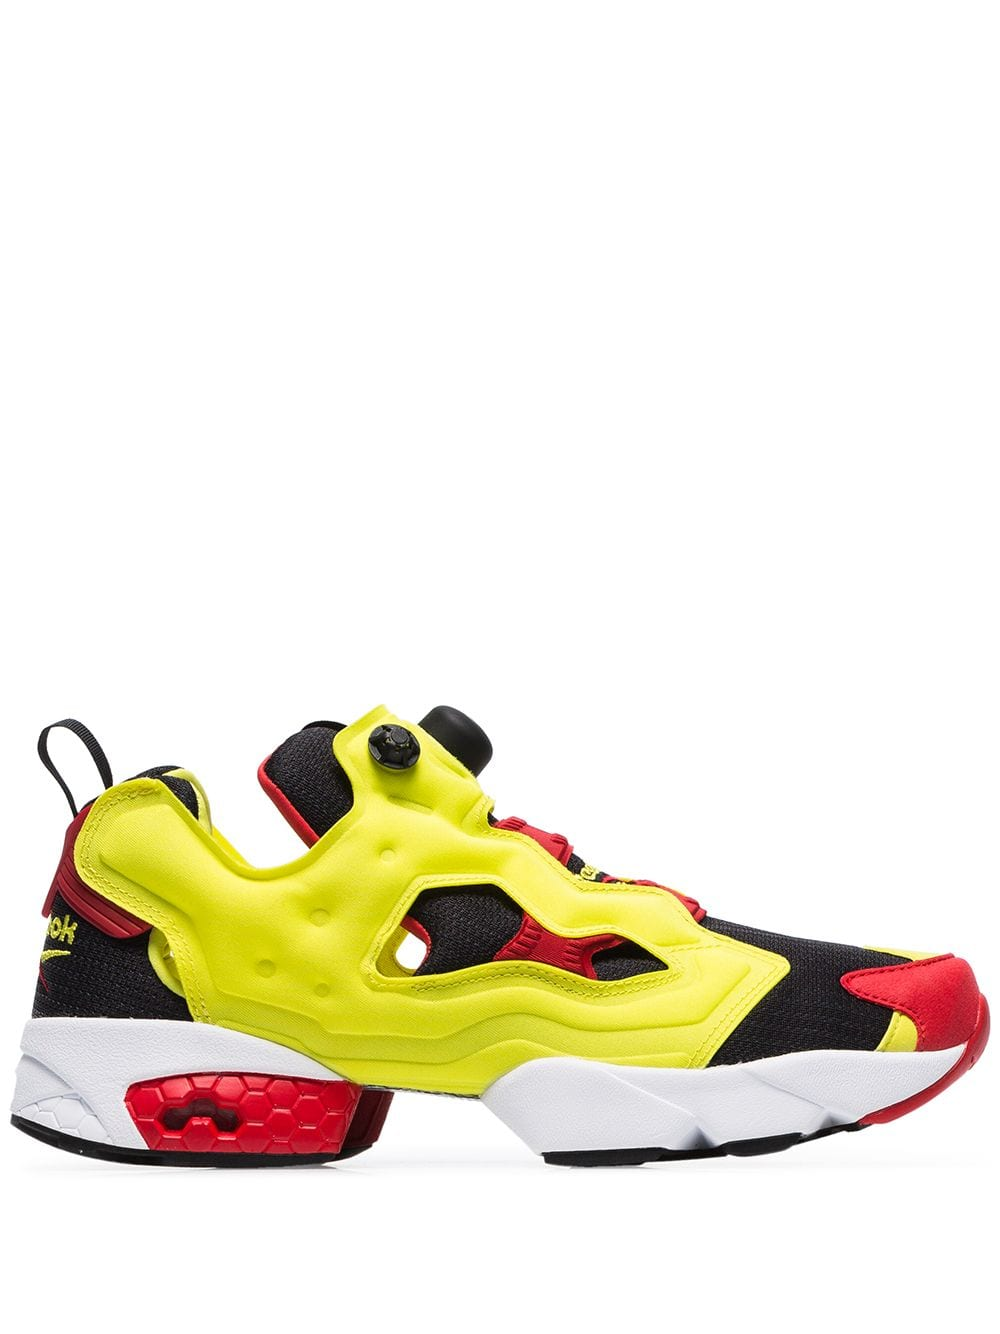 Reebok Instapump Fury sneakers Multicoloured | Reebok